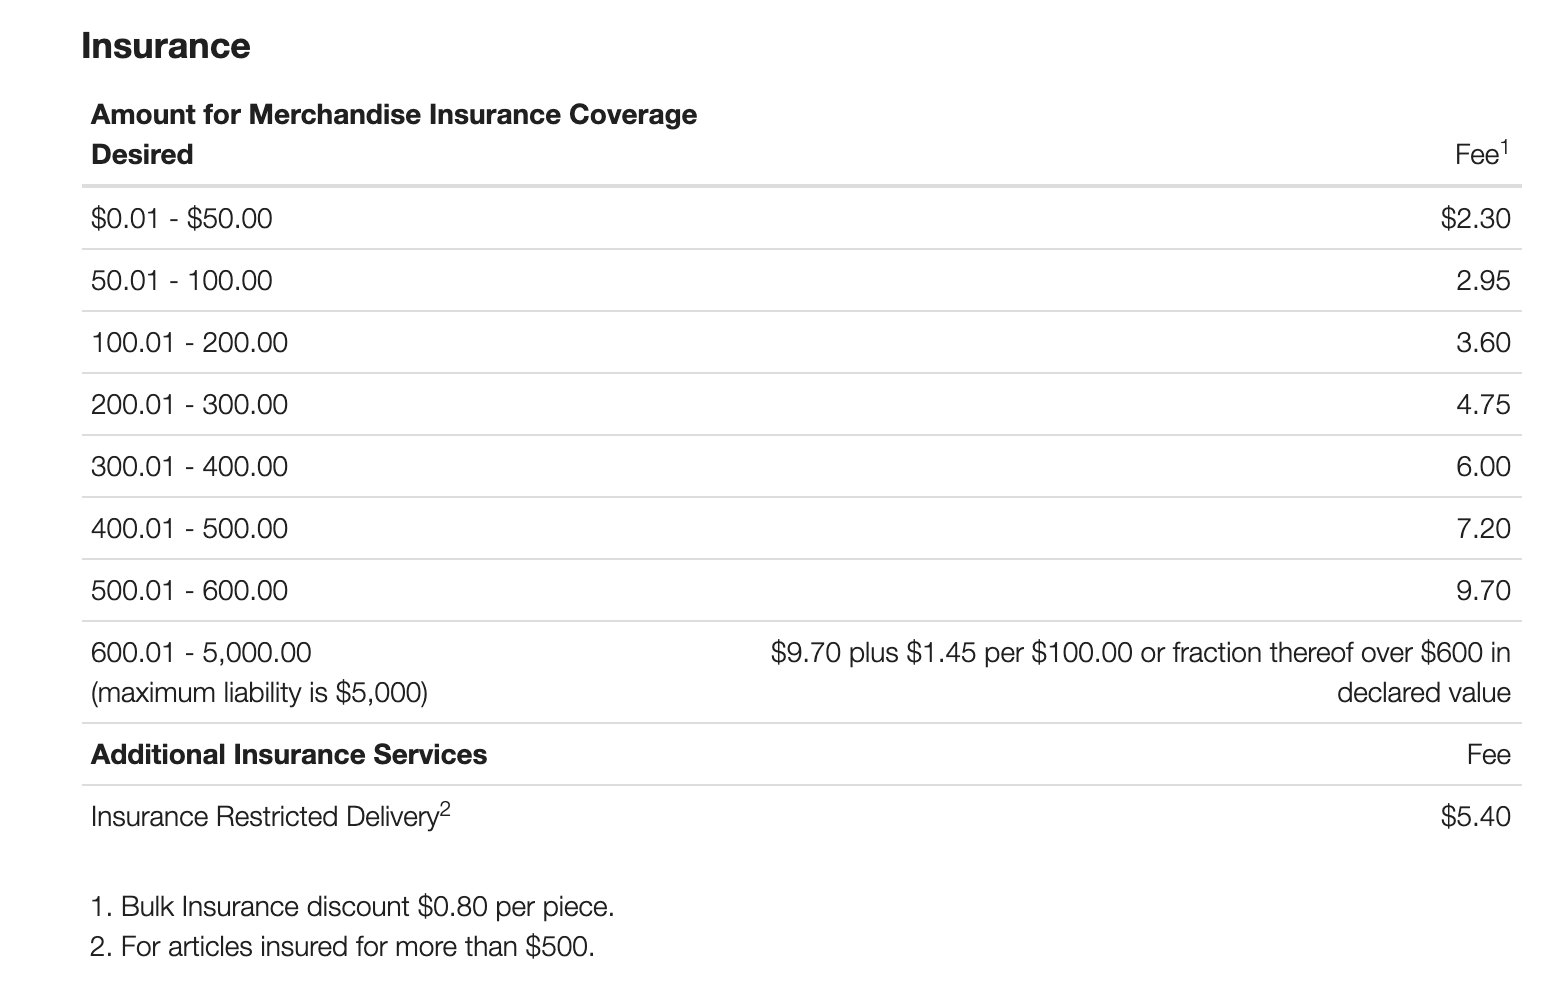 Amount for Merchandise Insurance Coverage